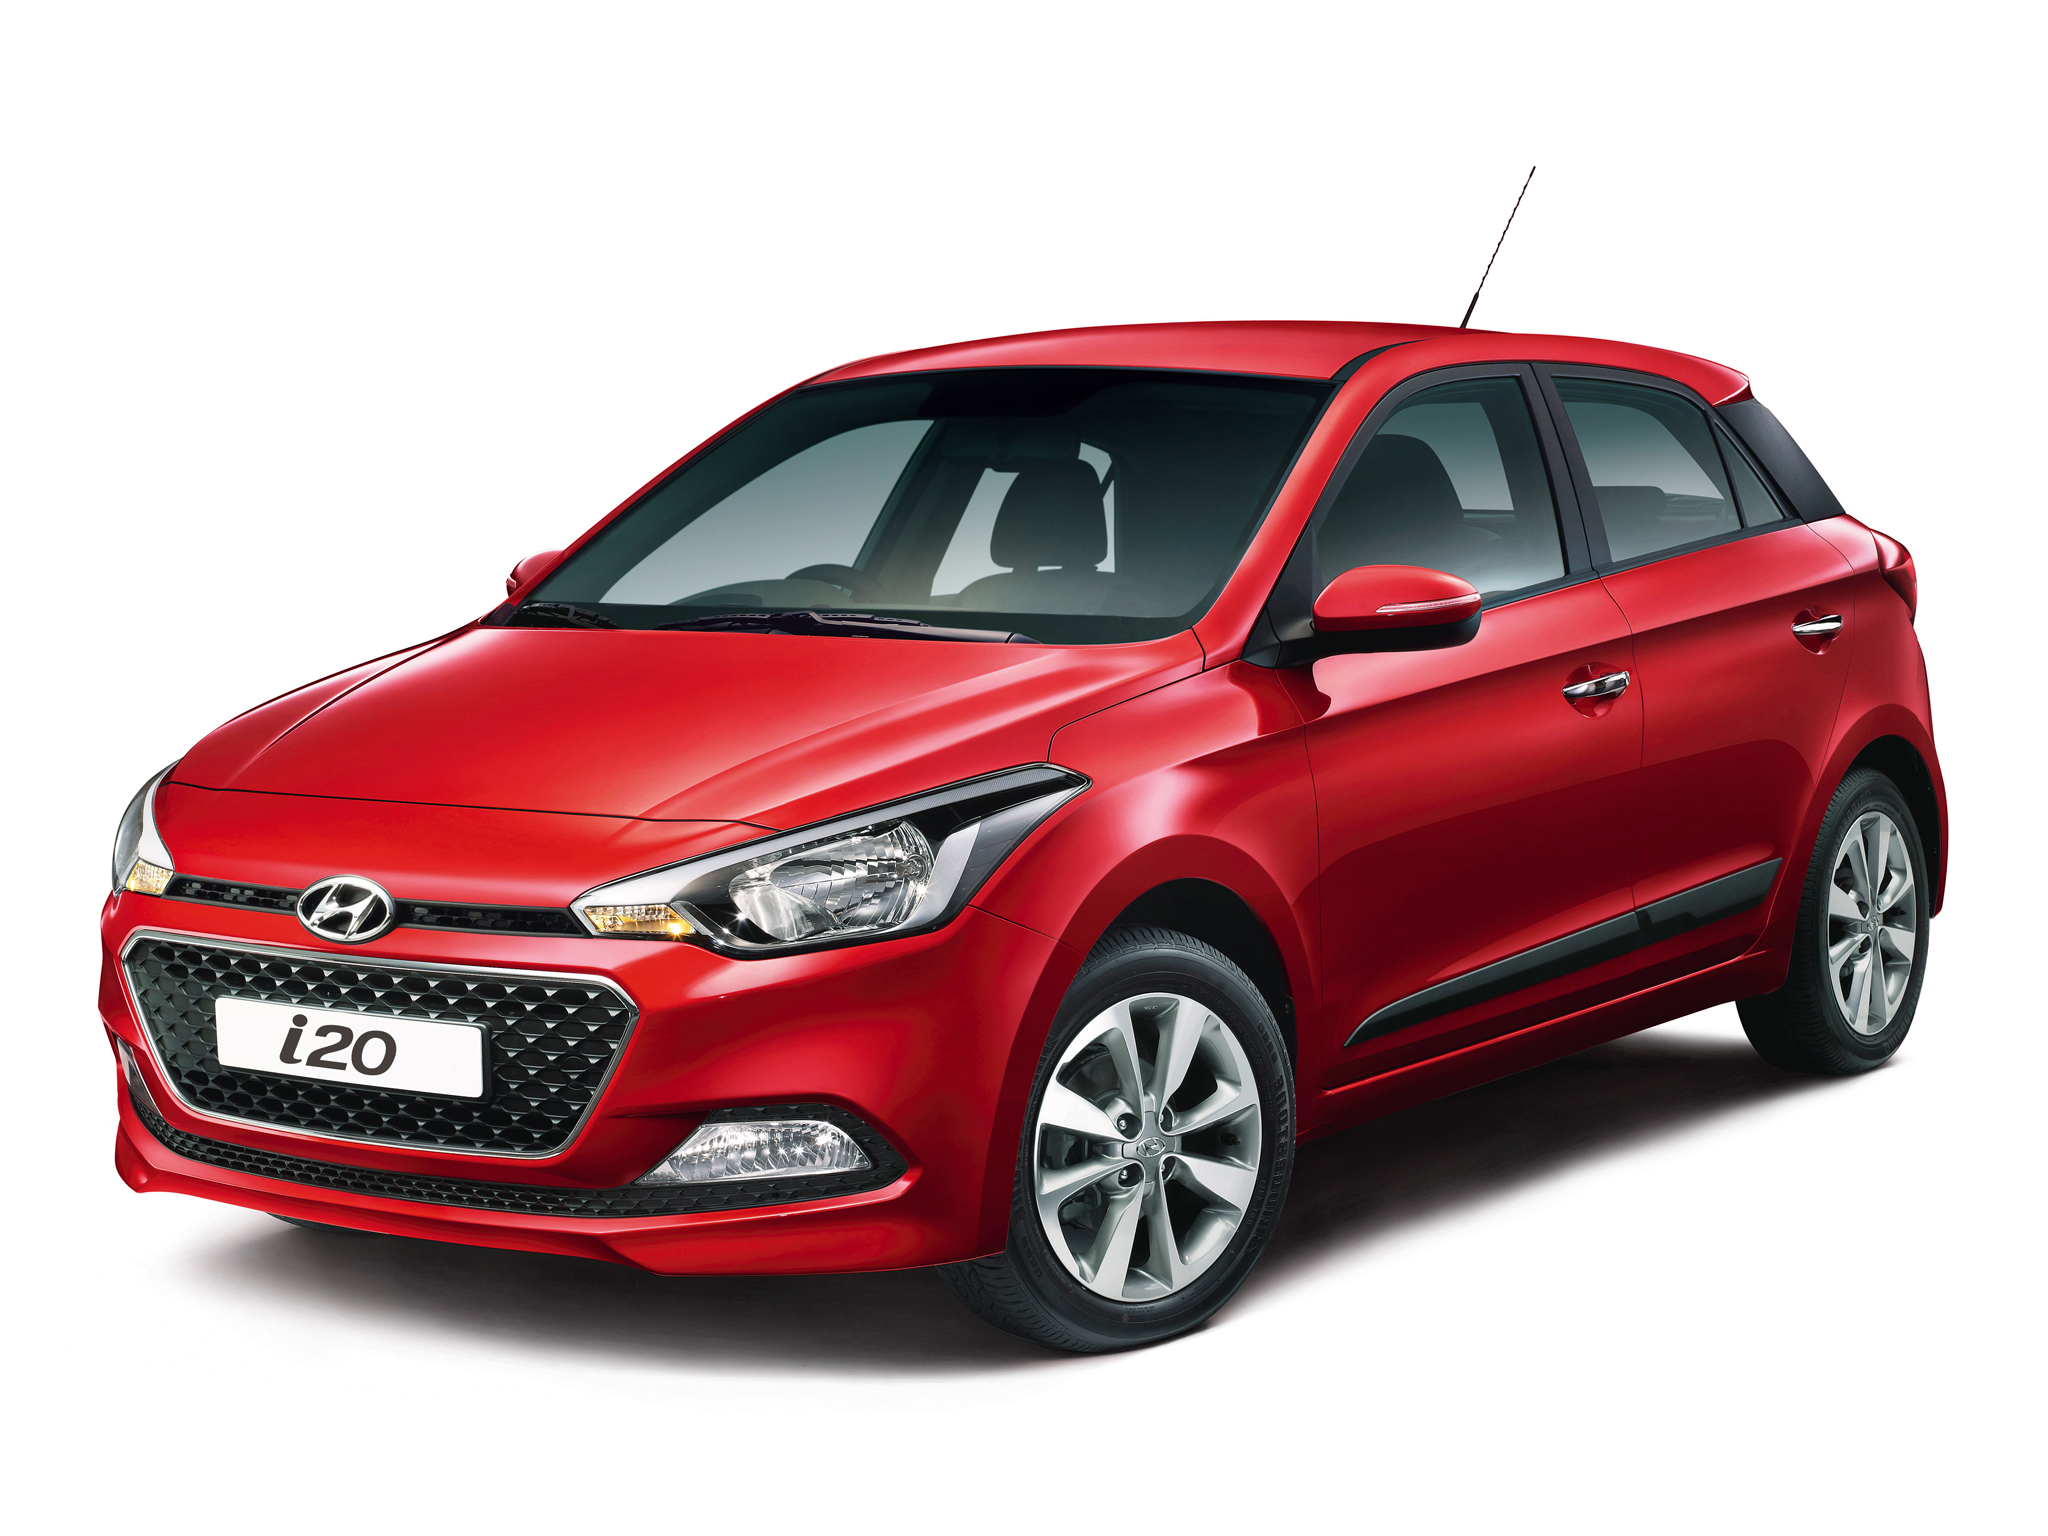 2015 hyundai i20 unveiled ahead of paris motor show video autoevolution. Black Bedroom Furniture Sets. Home Design Ideas